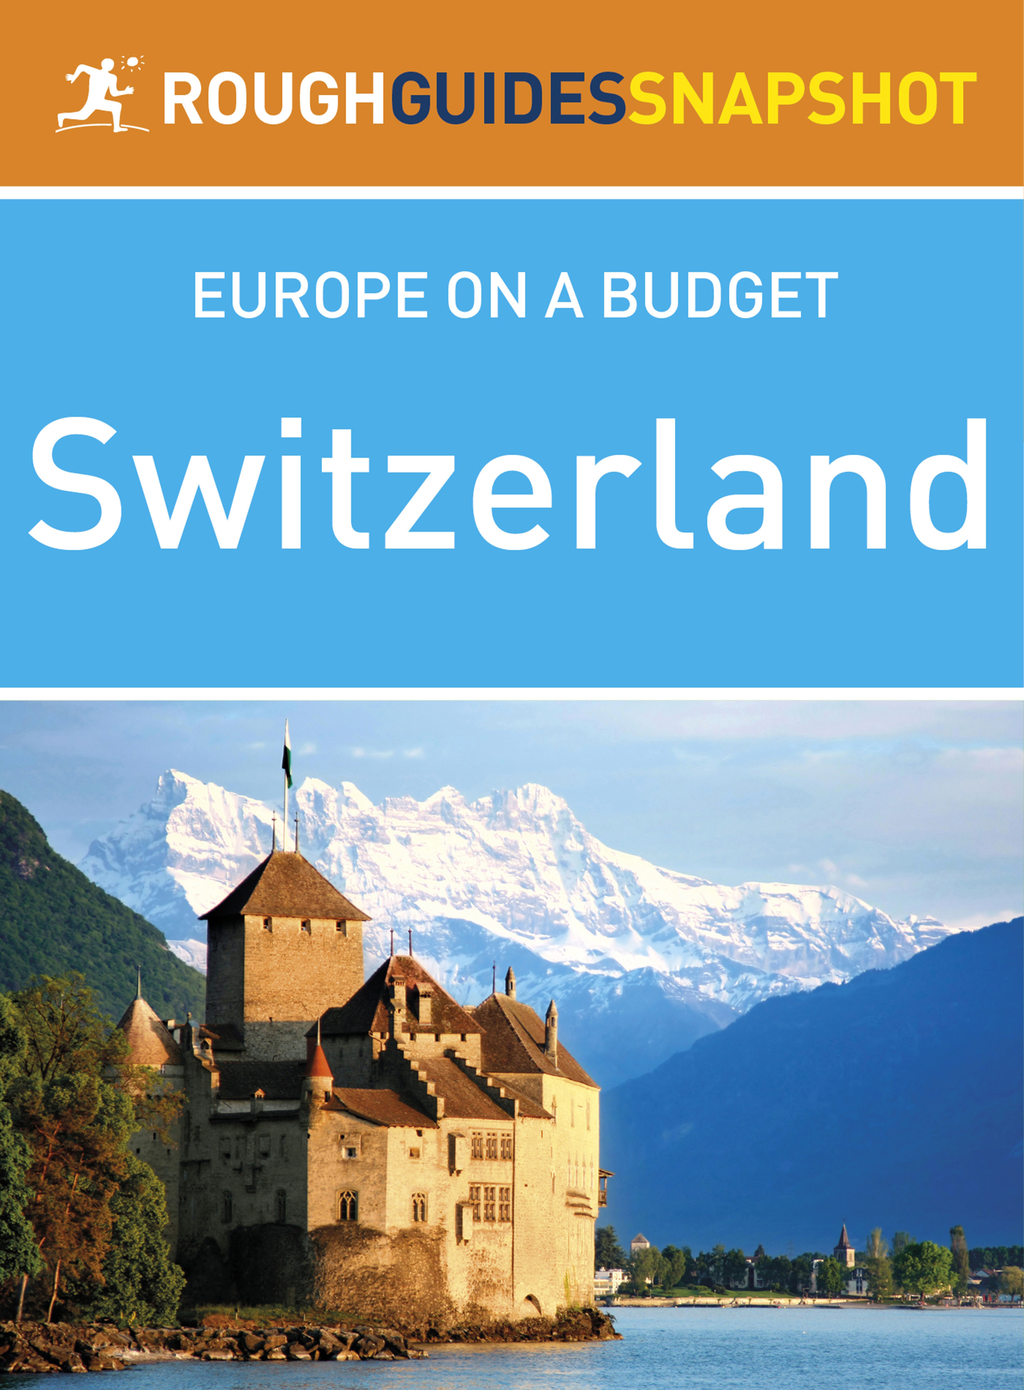 Rough Guides Snapshot Europe on A Budget: Switzerland